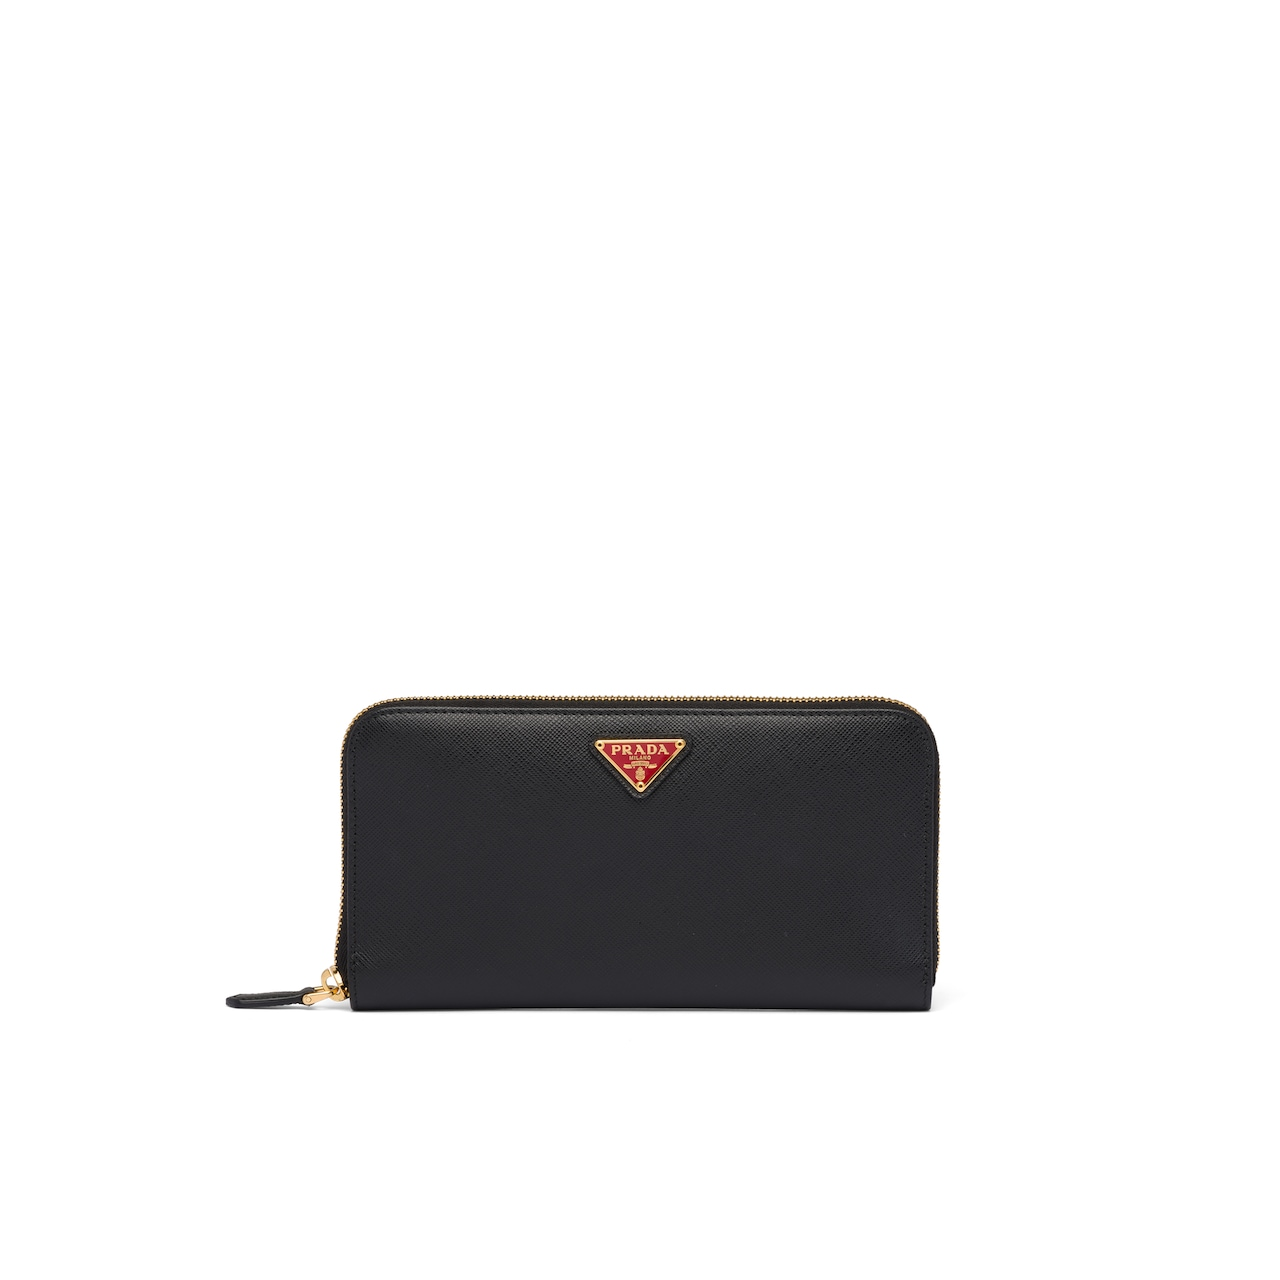 Prada Large Saffiano Leather Wallet 1